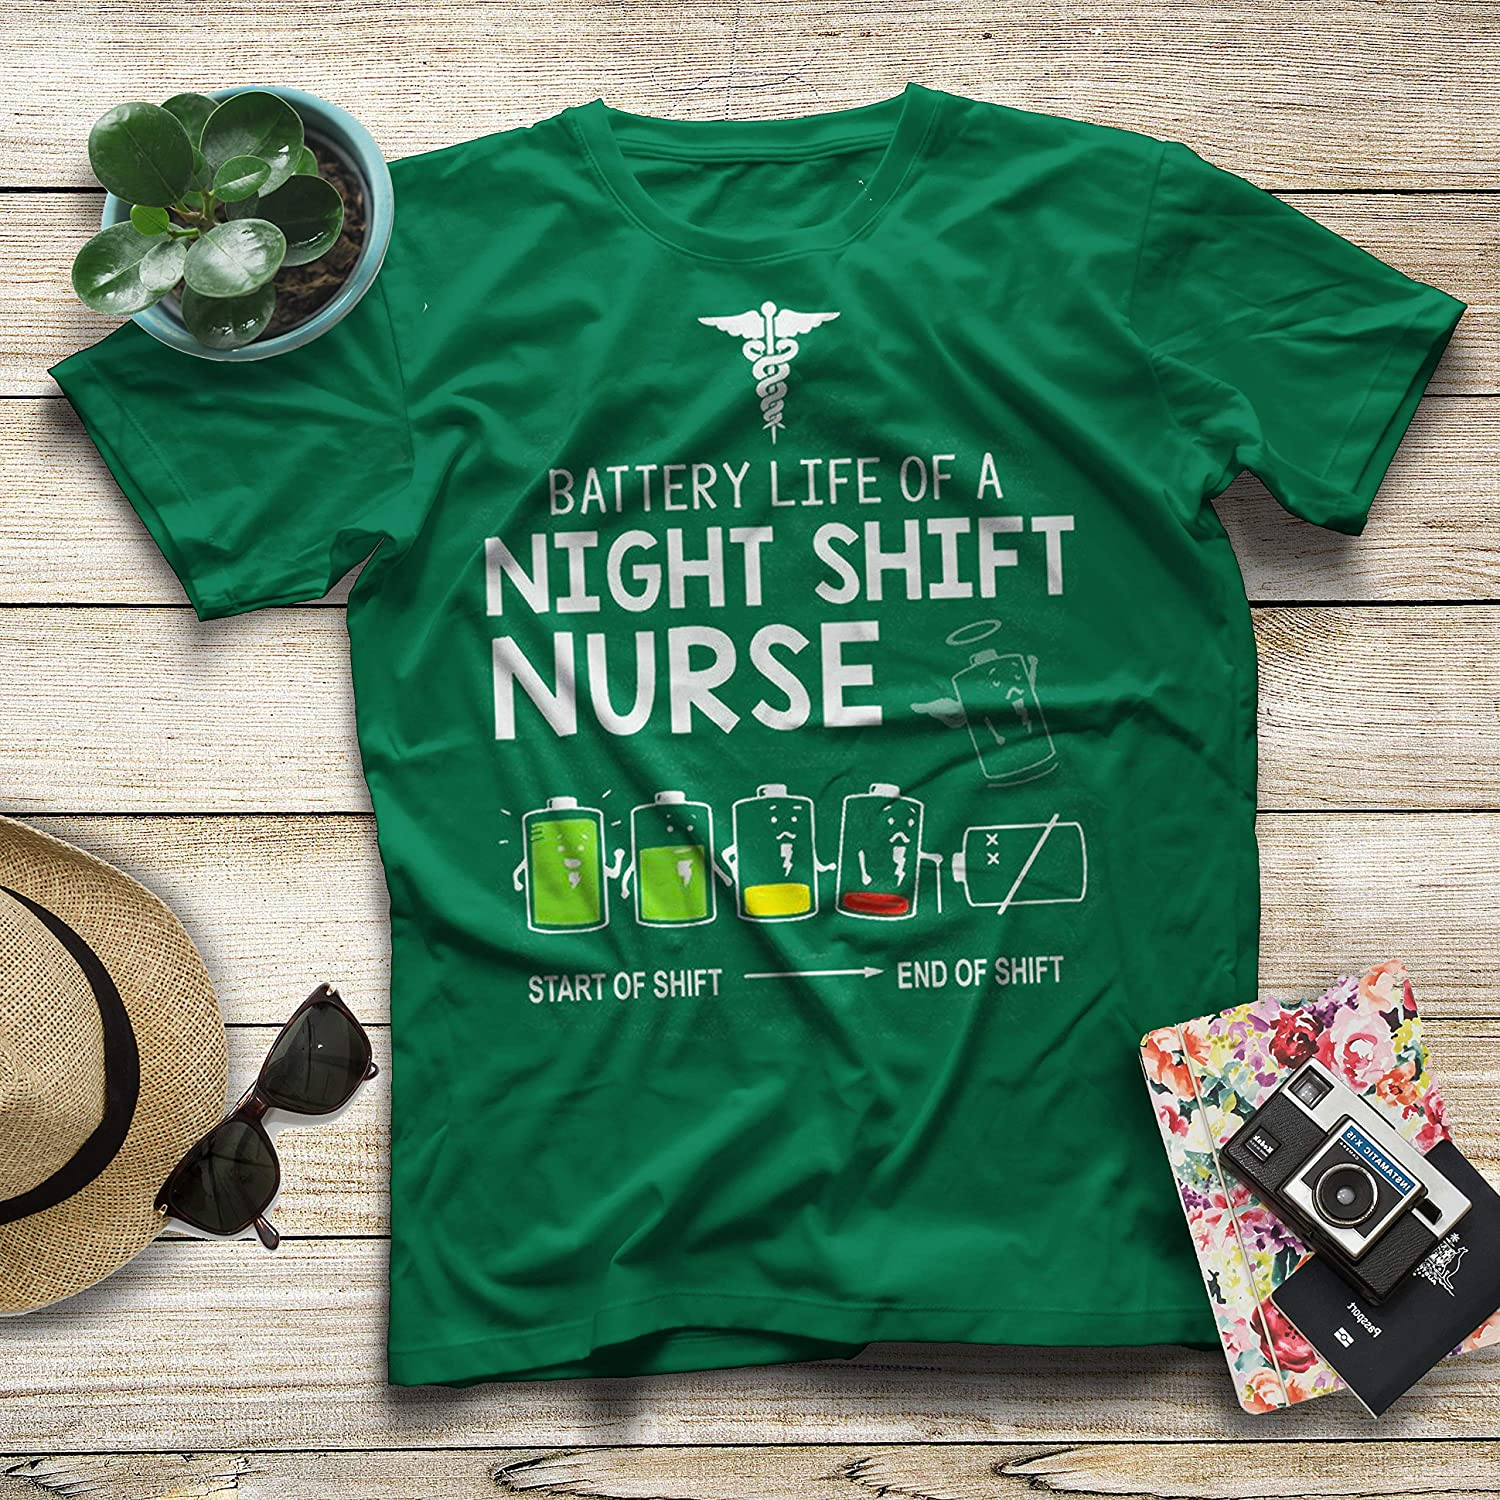 Nurse T-Shirt Battery Life of A Night Shift Nurse Decrease.Love Them